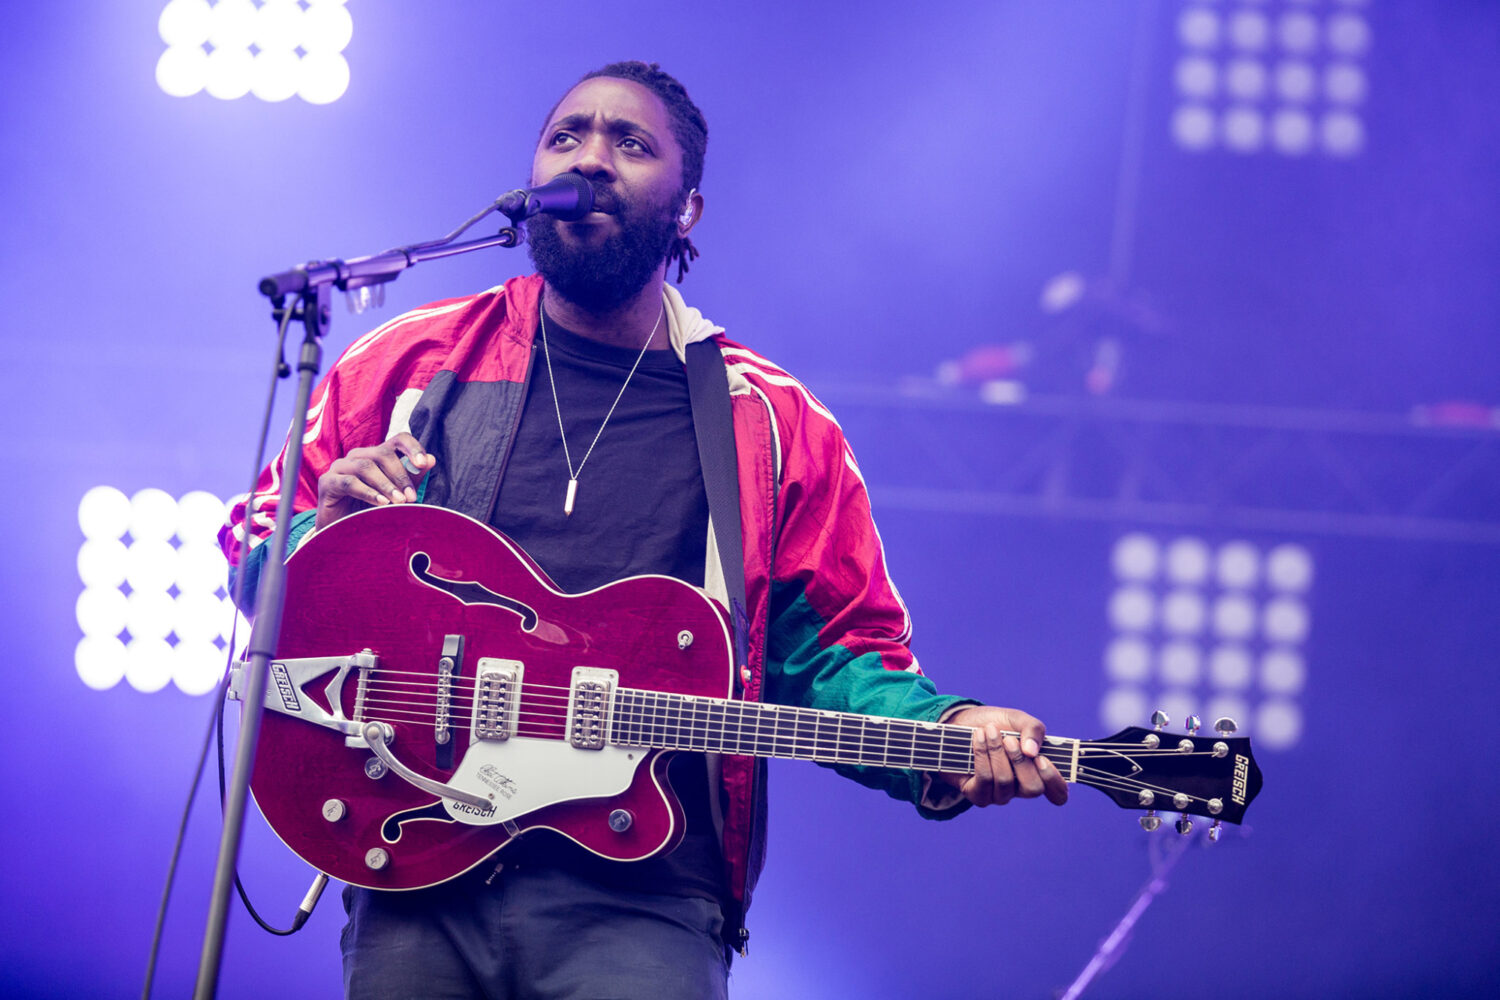 Bloc Party to play 'Silent Alarm' in full on European tour